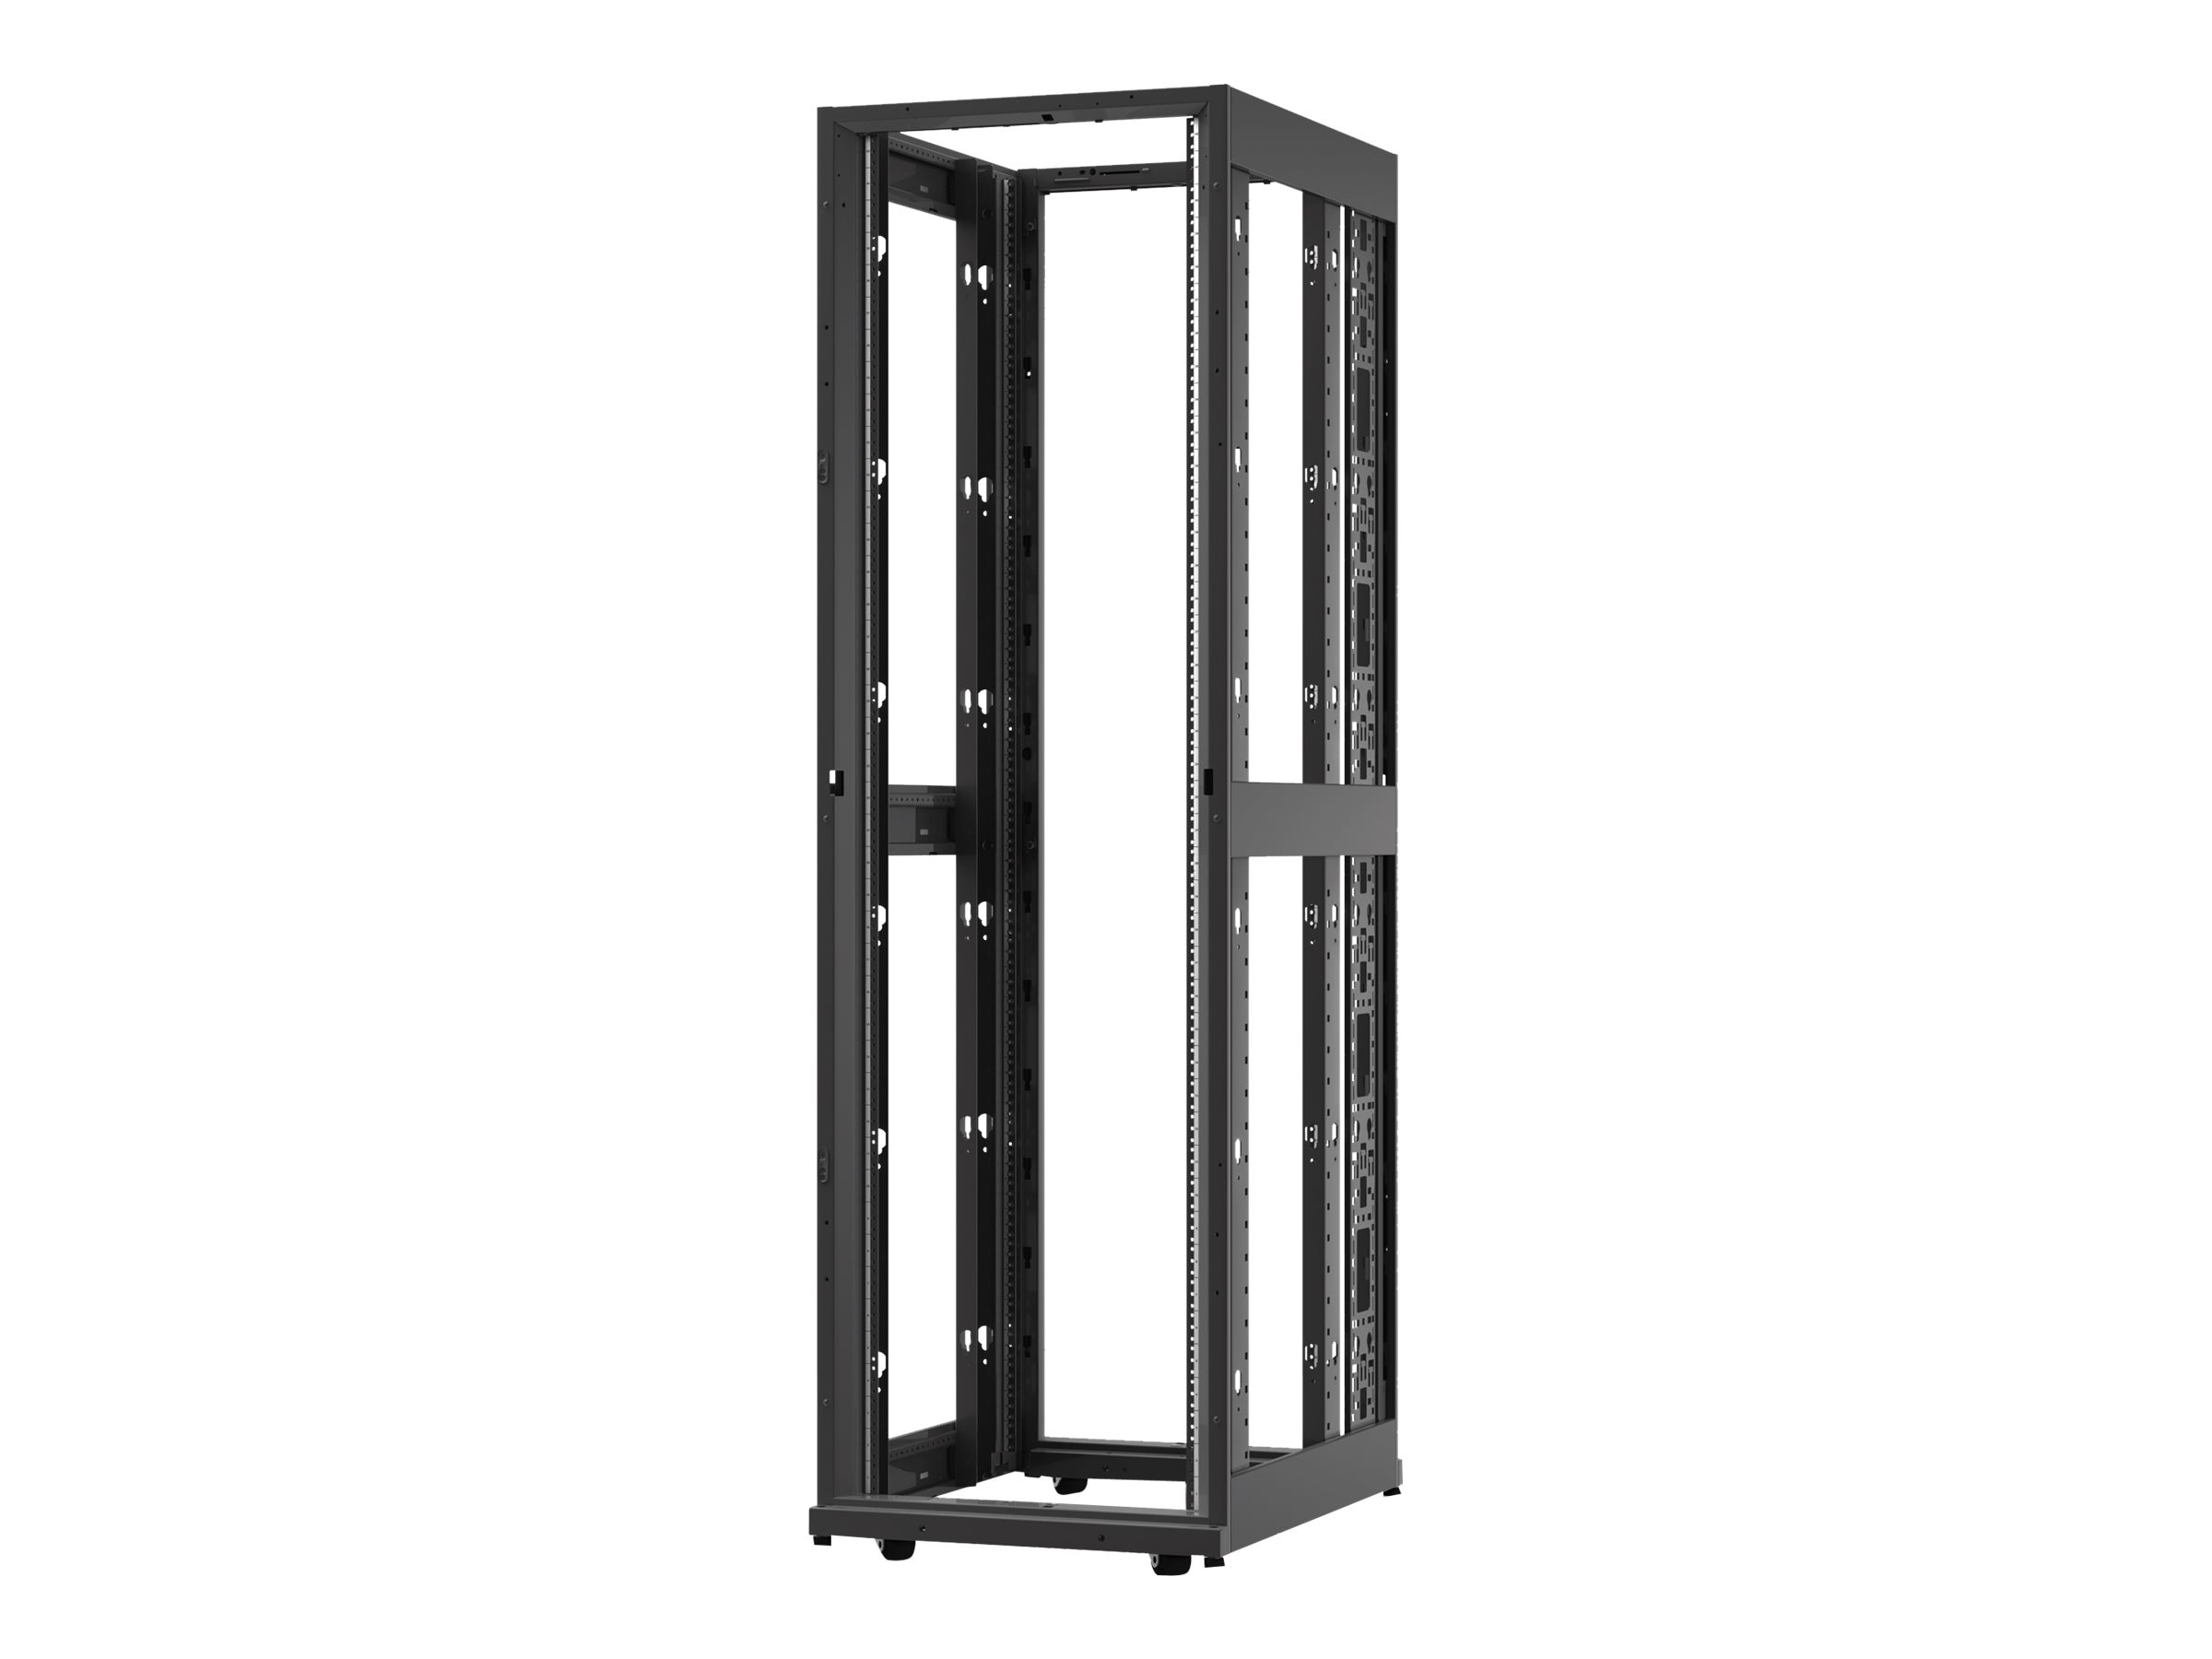 APC NetShelter AV 42U 600mm W x 825mm D Enclosure, 10-32 Threaded Rails, No Sides Roof Doors, Black